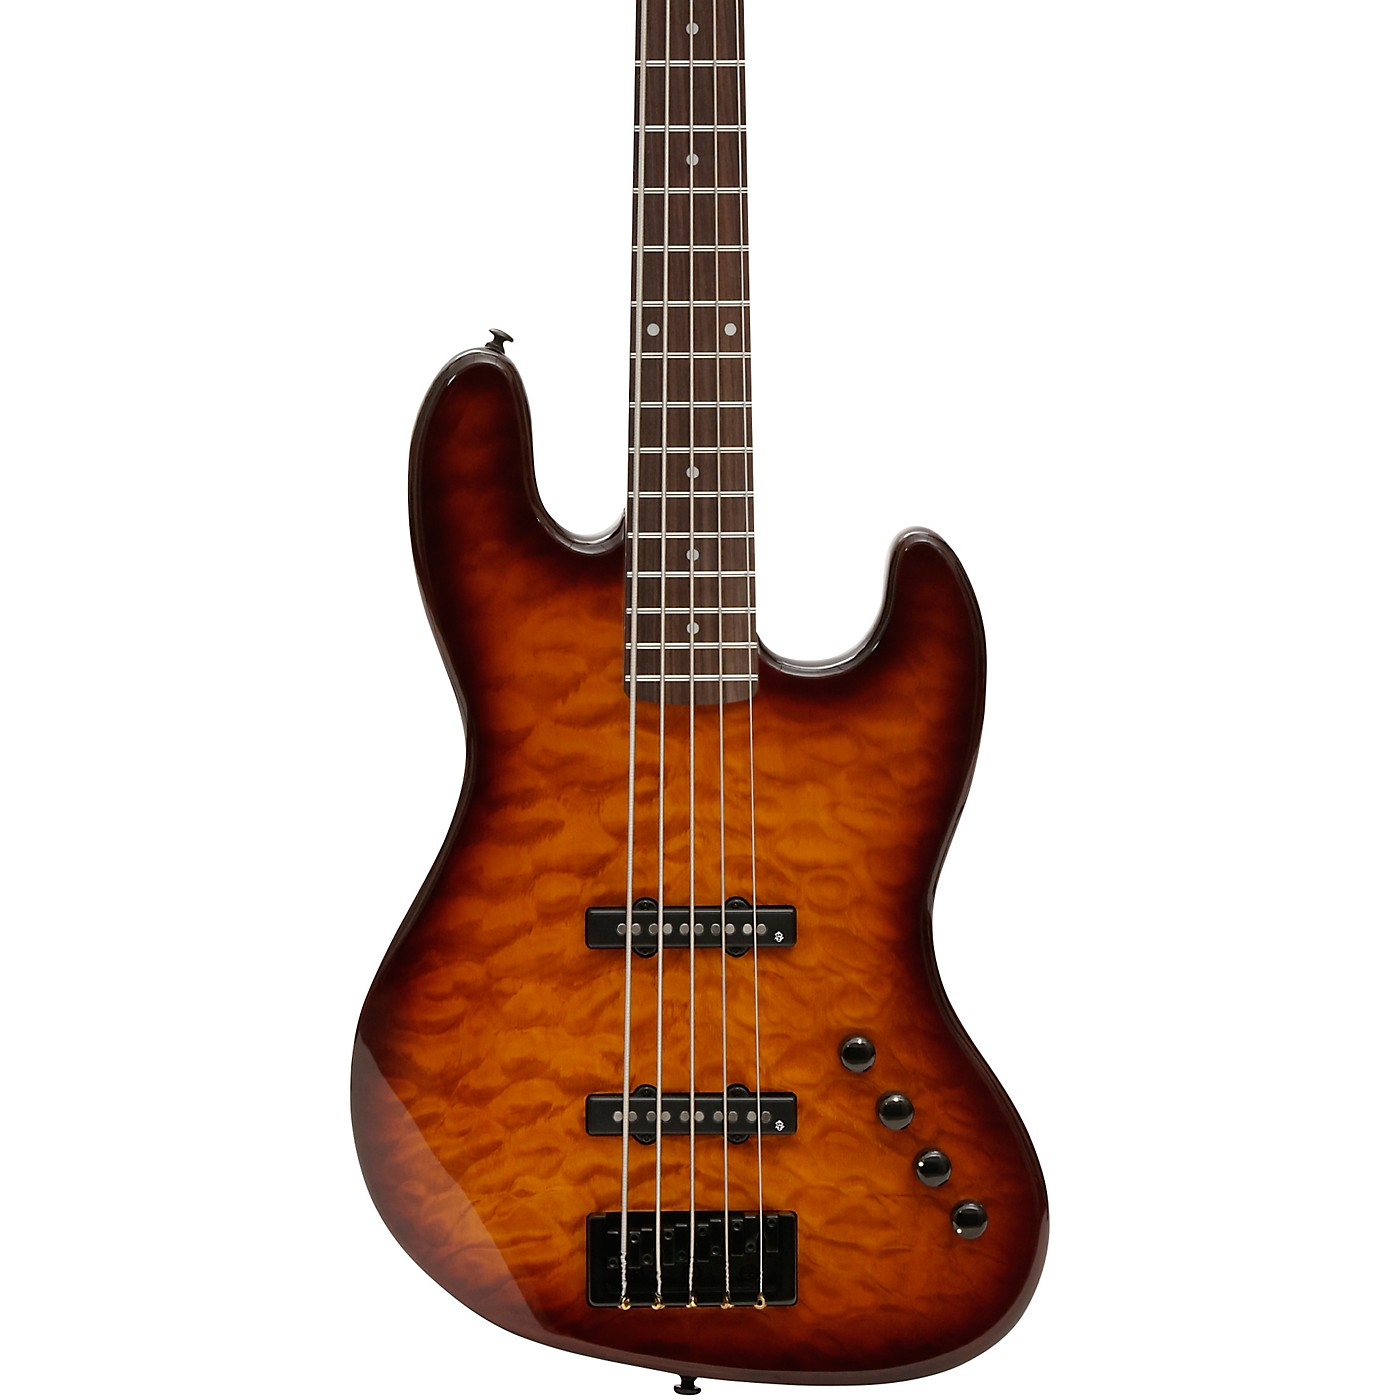 Spector CodaBass5 Pro 5-String Electric Bass Guitar thumbnail